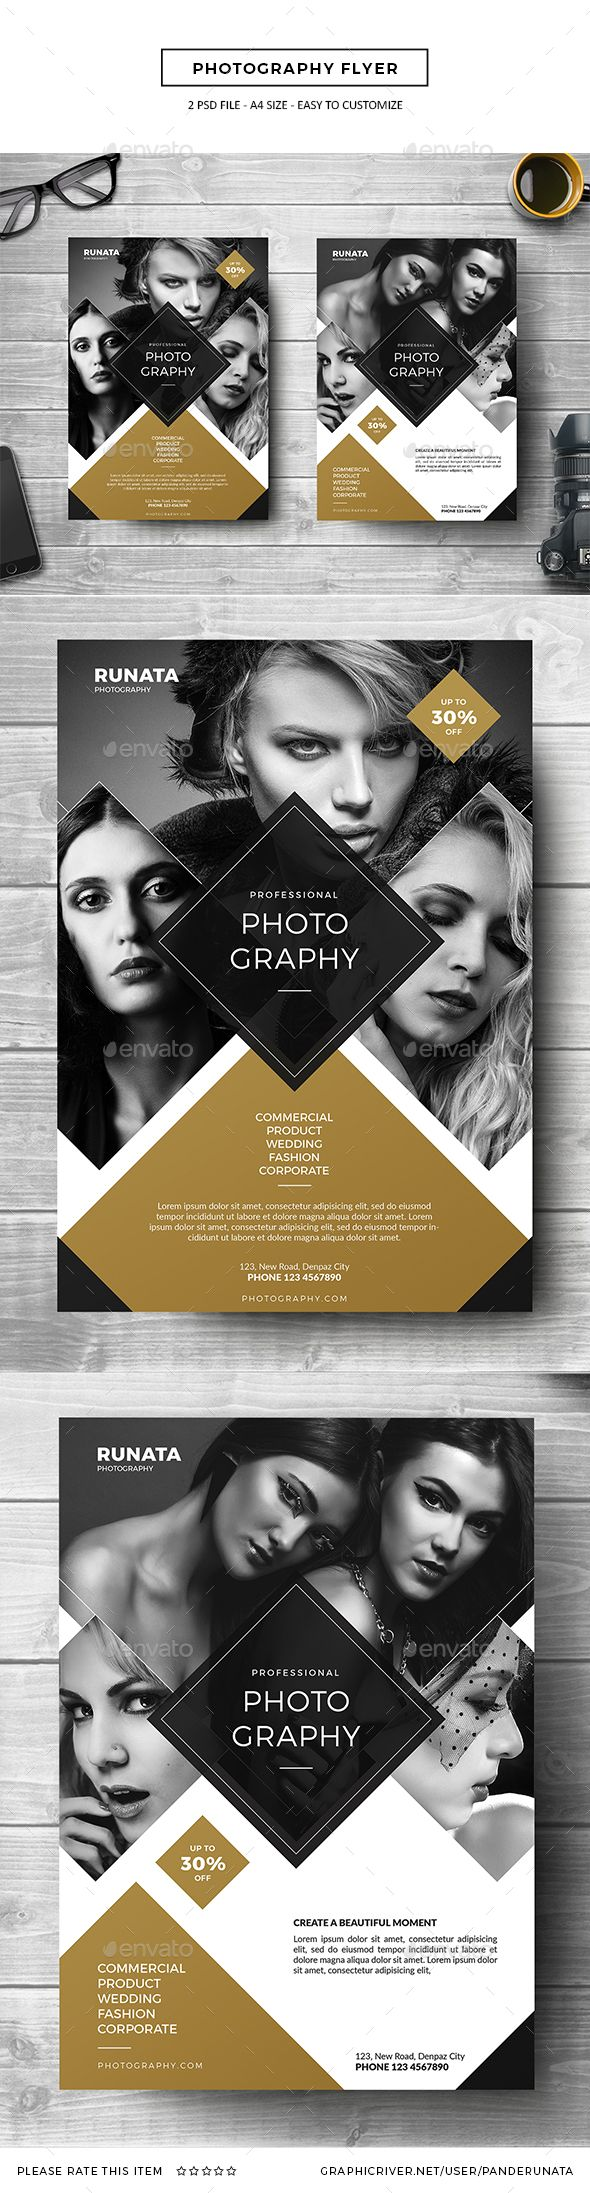 Photography Flyer Template PSD. Download here: http://graphicriver.net/item/photography-flyer/16819795?ref=ksioks